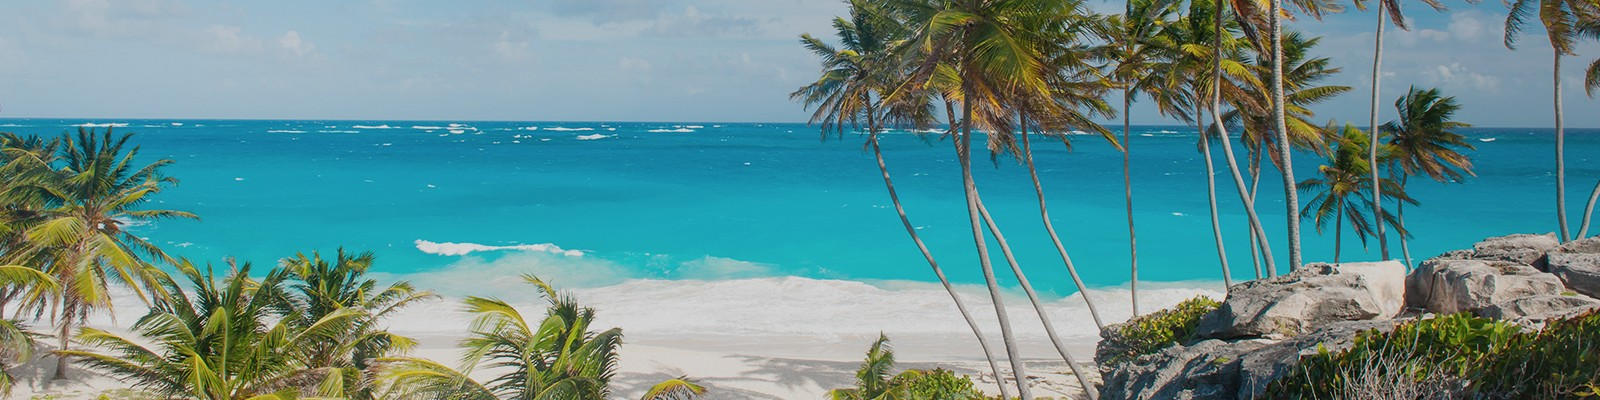 barbados honeymoon packages header